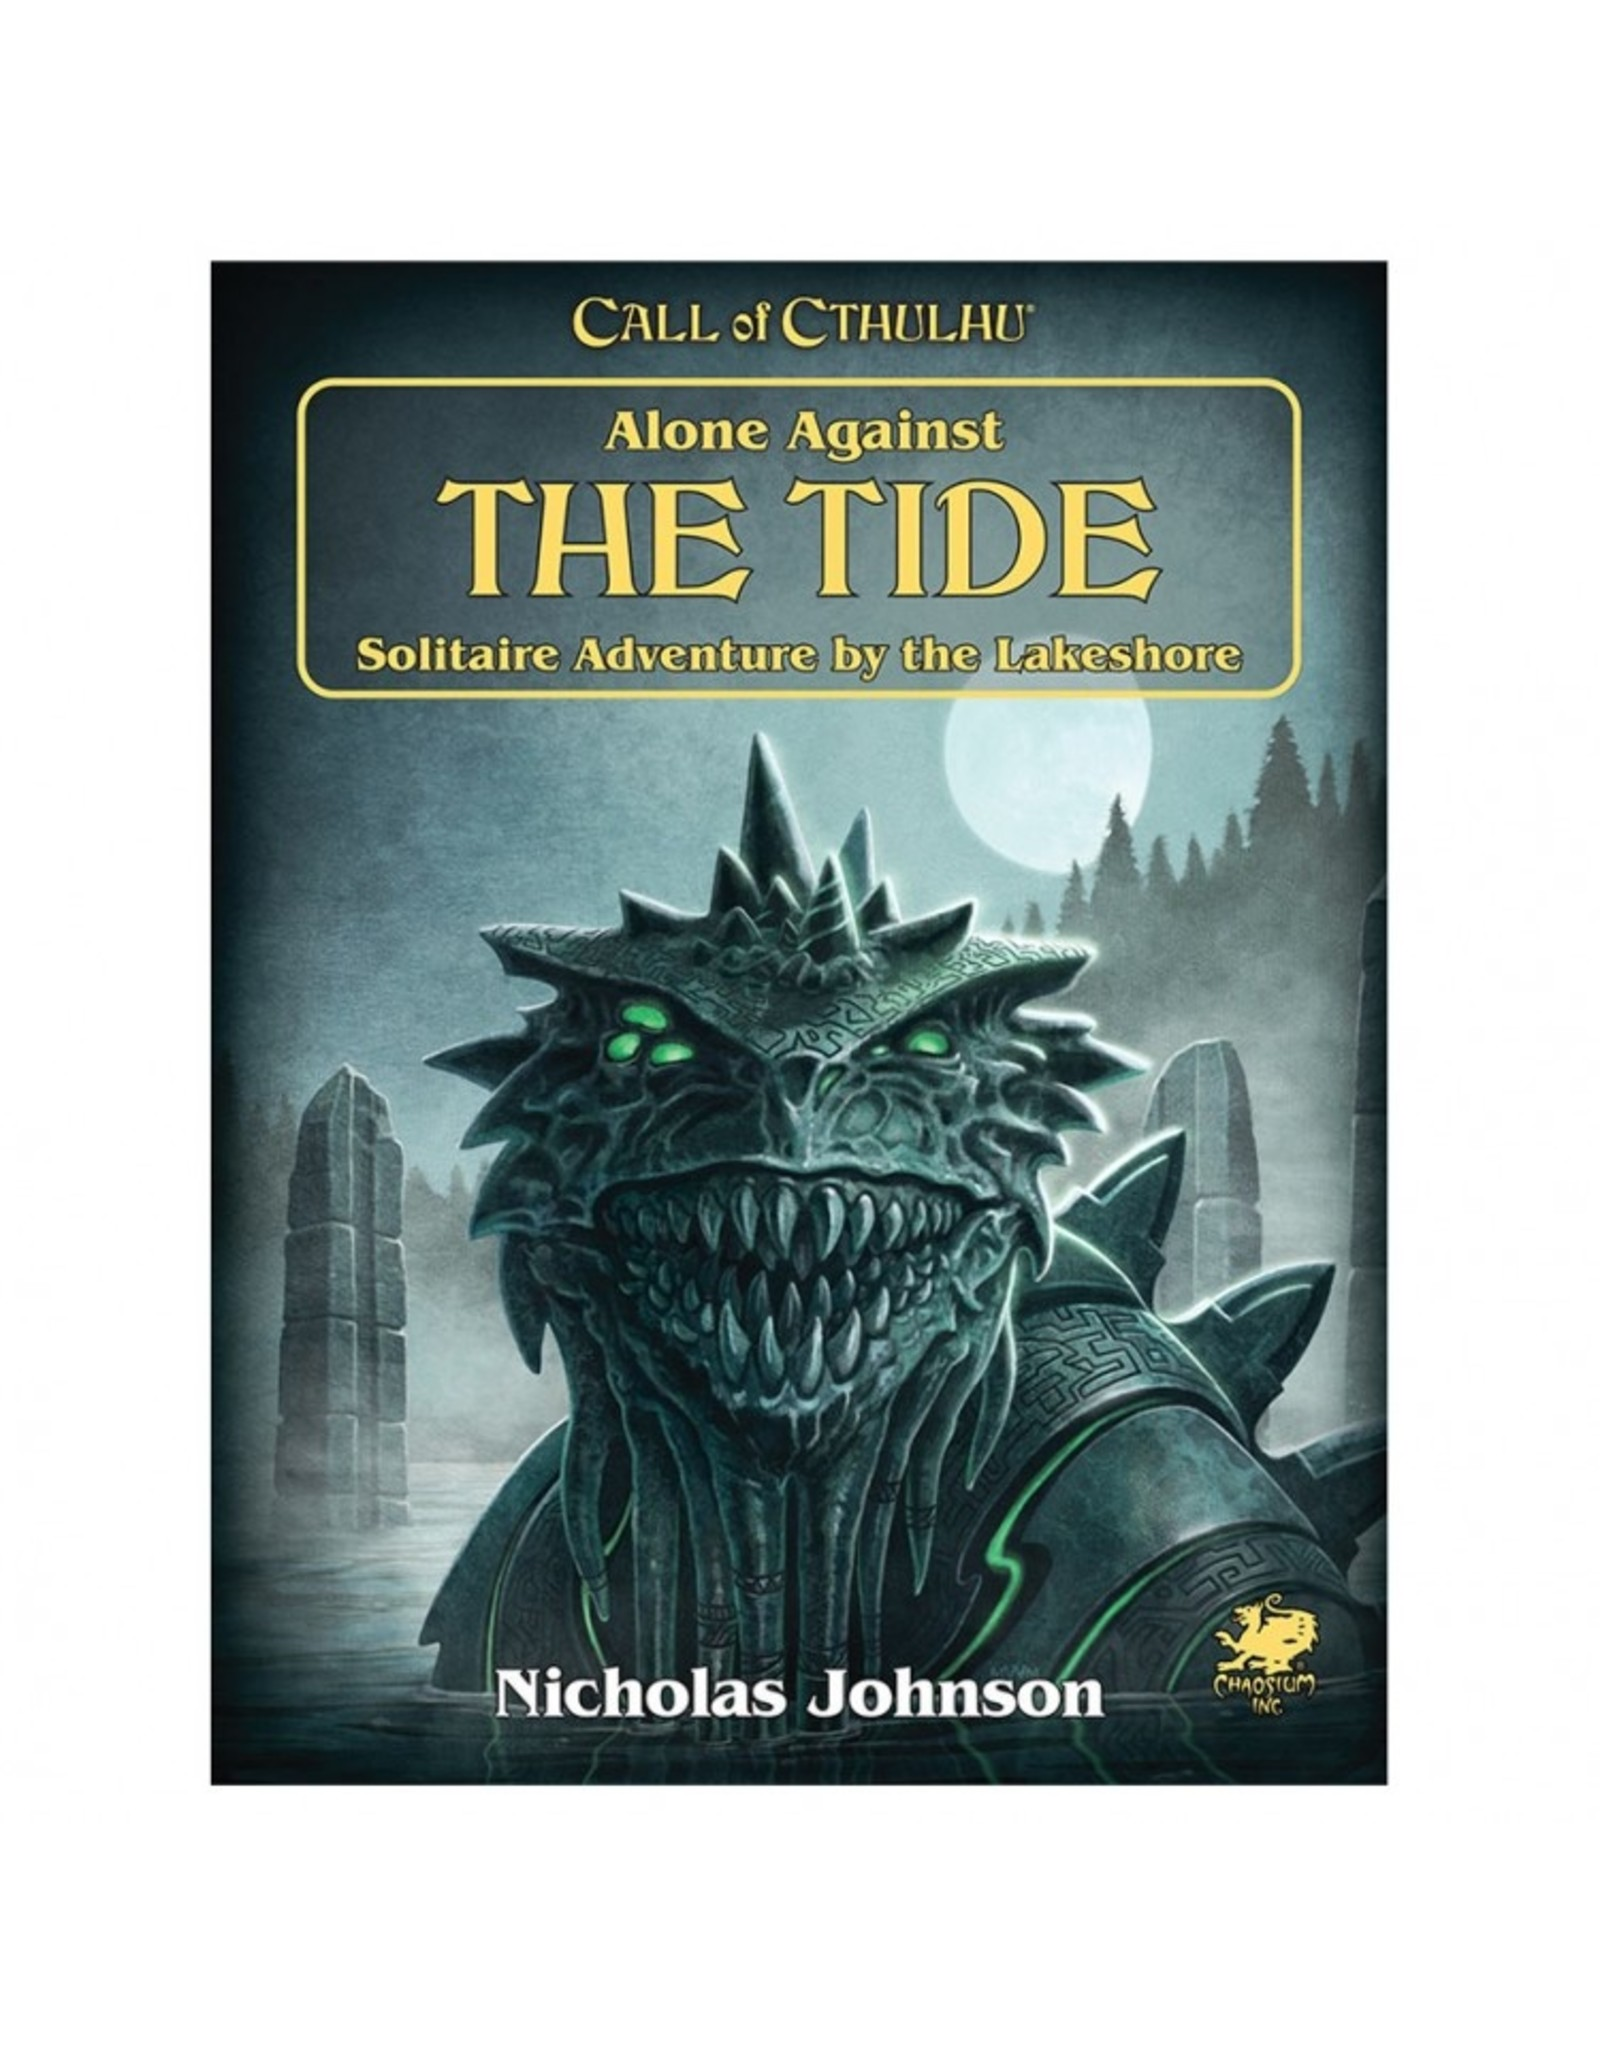 Chaosium Call of Cthulhu: Solo Adv. Alone Against the Tide